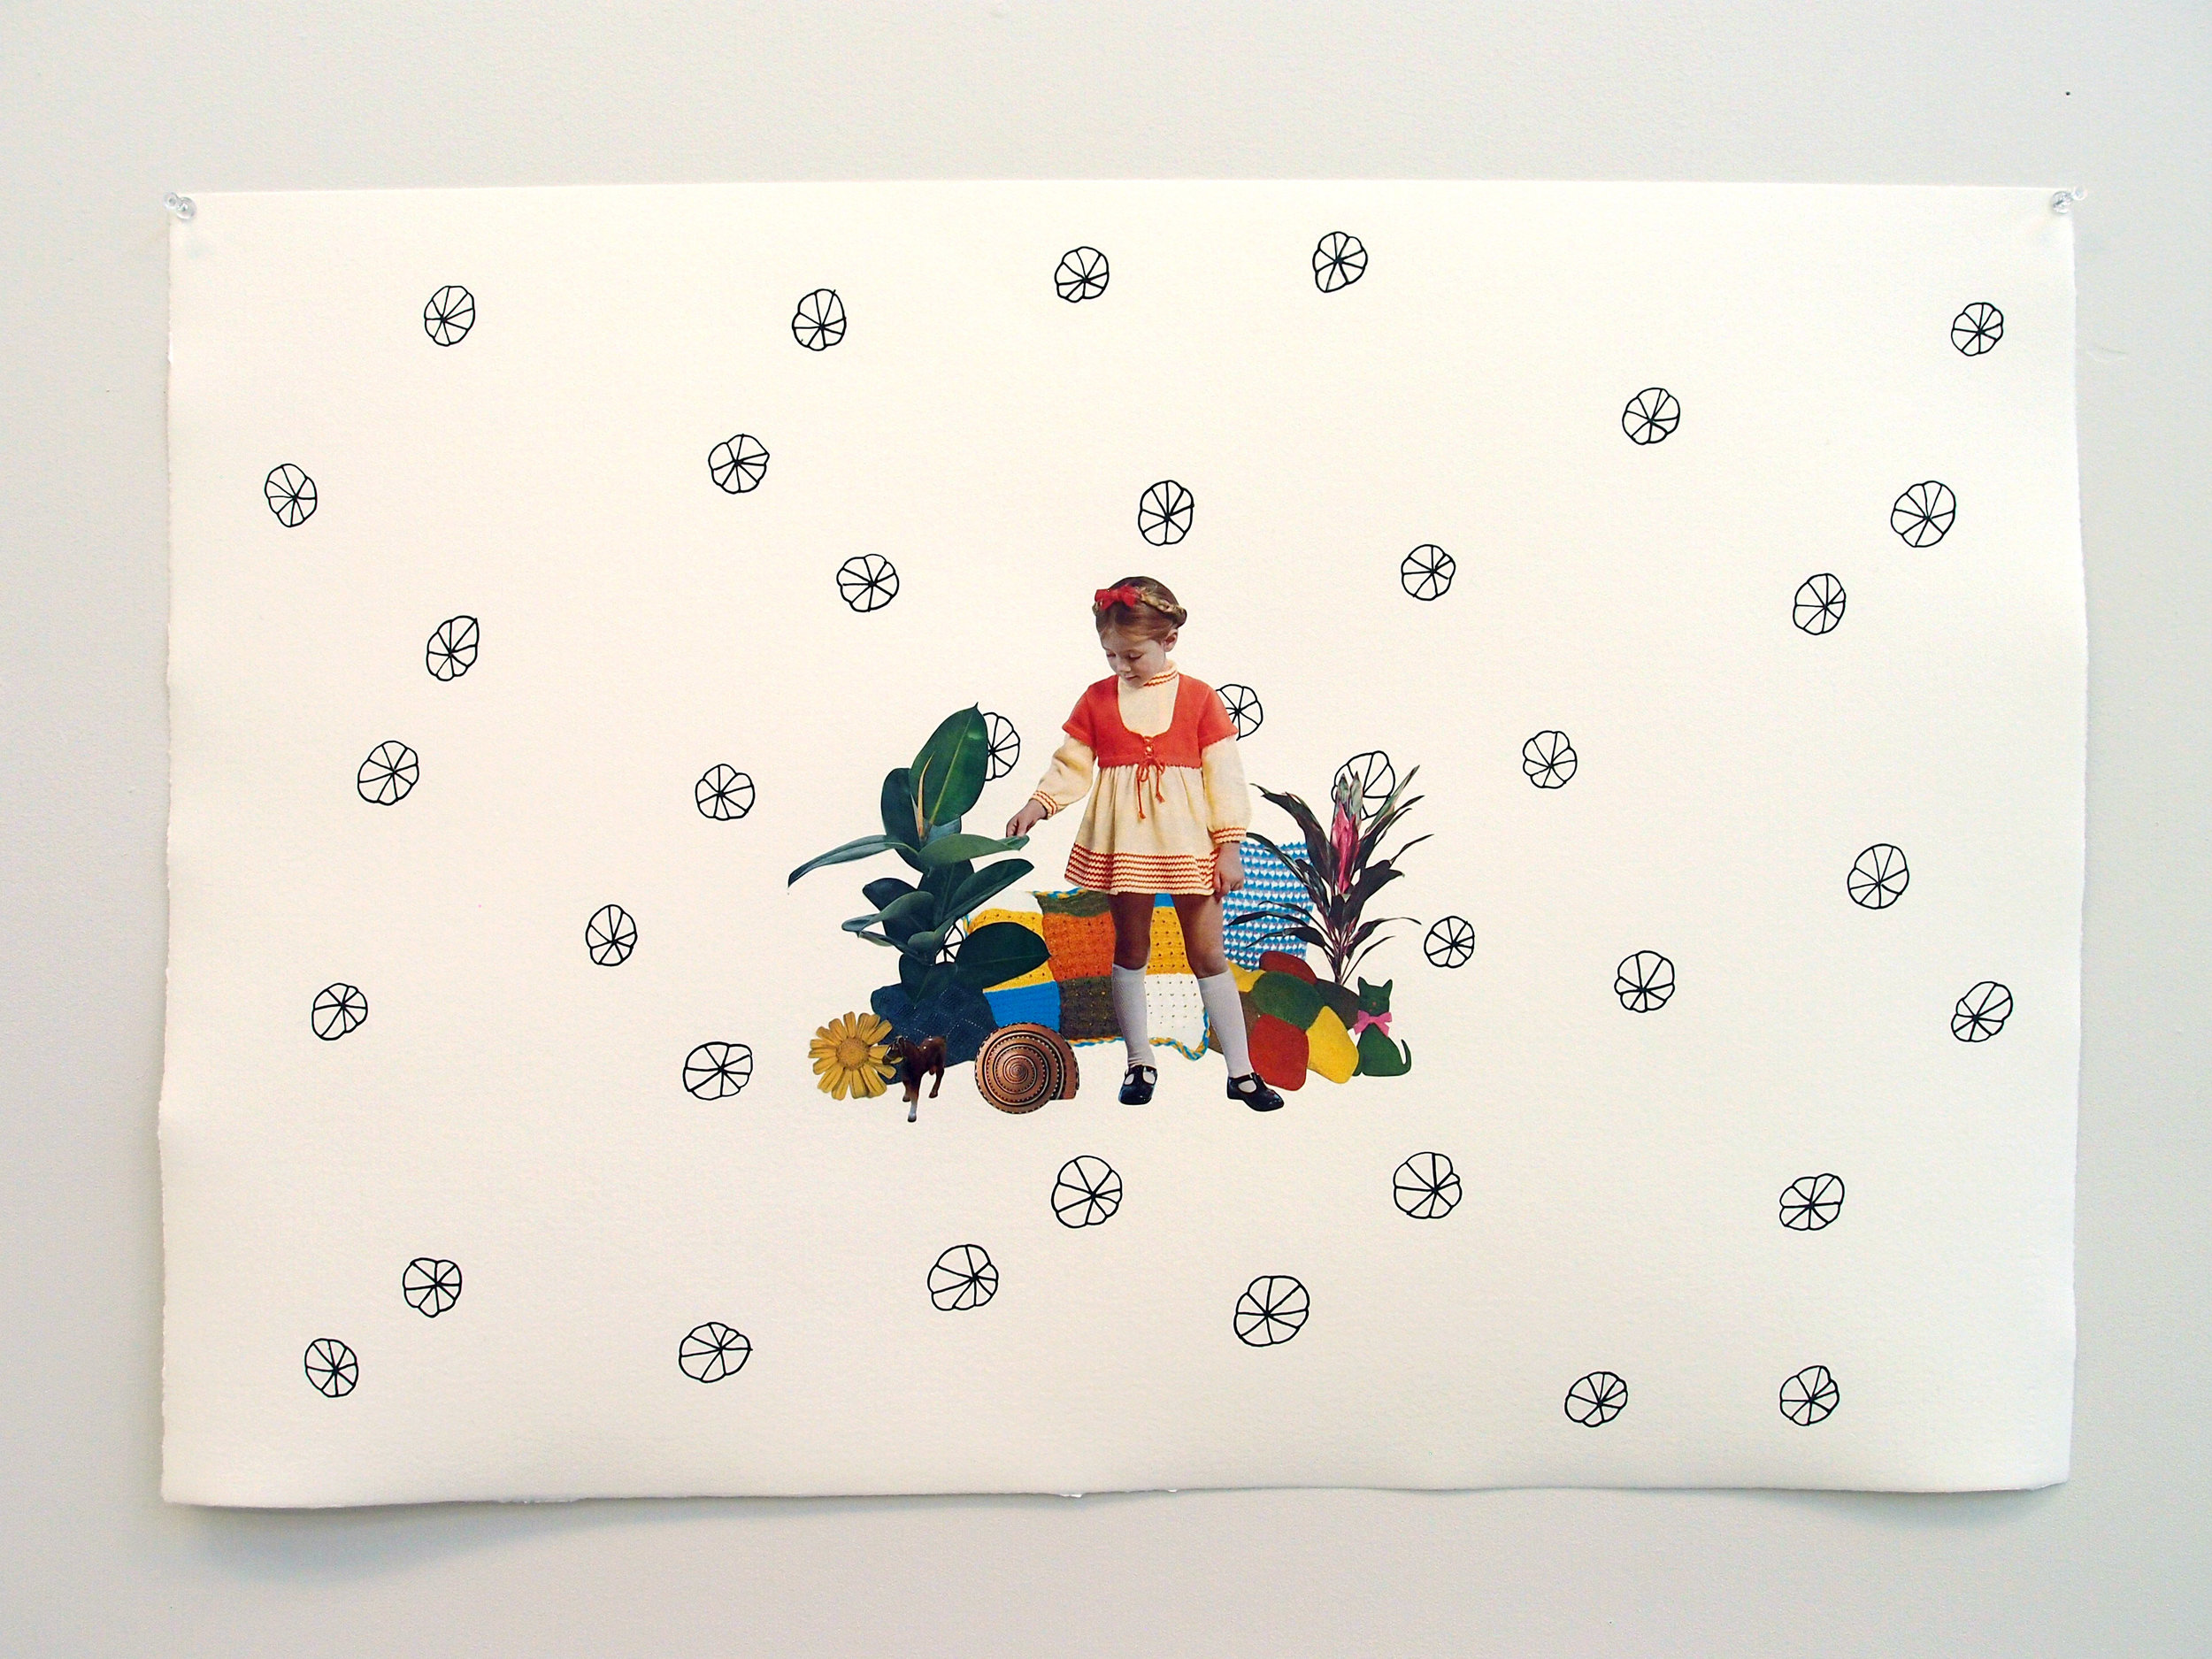 Icing Sugar Kitten Land, 2015, collage, found paper, acrylic marker on Hahnemühle paper, 530mm x 780mm